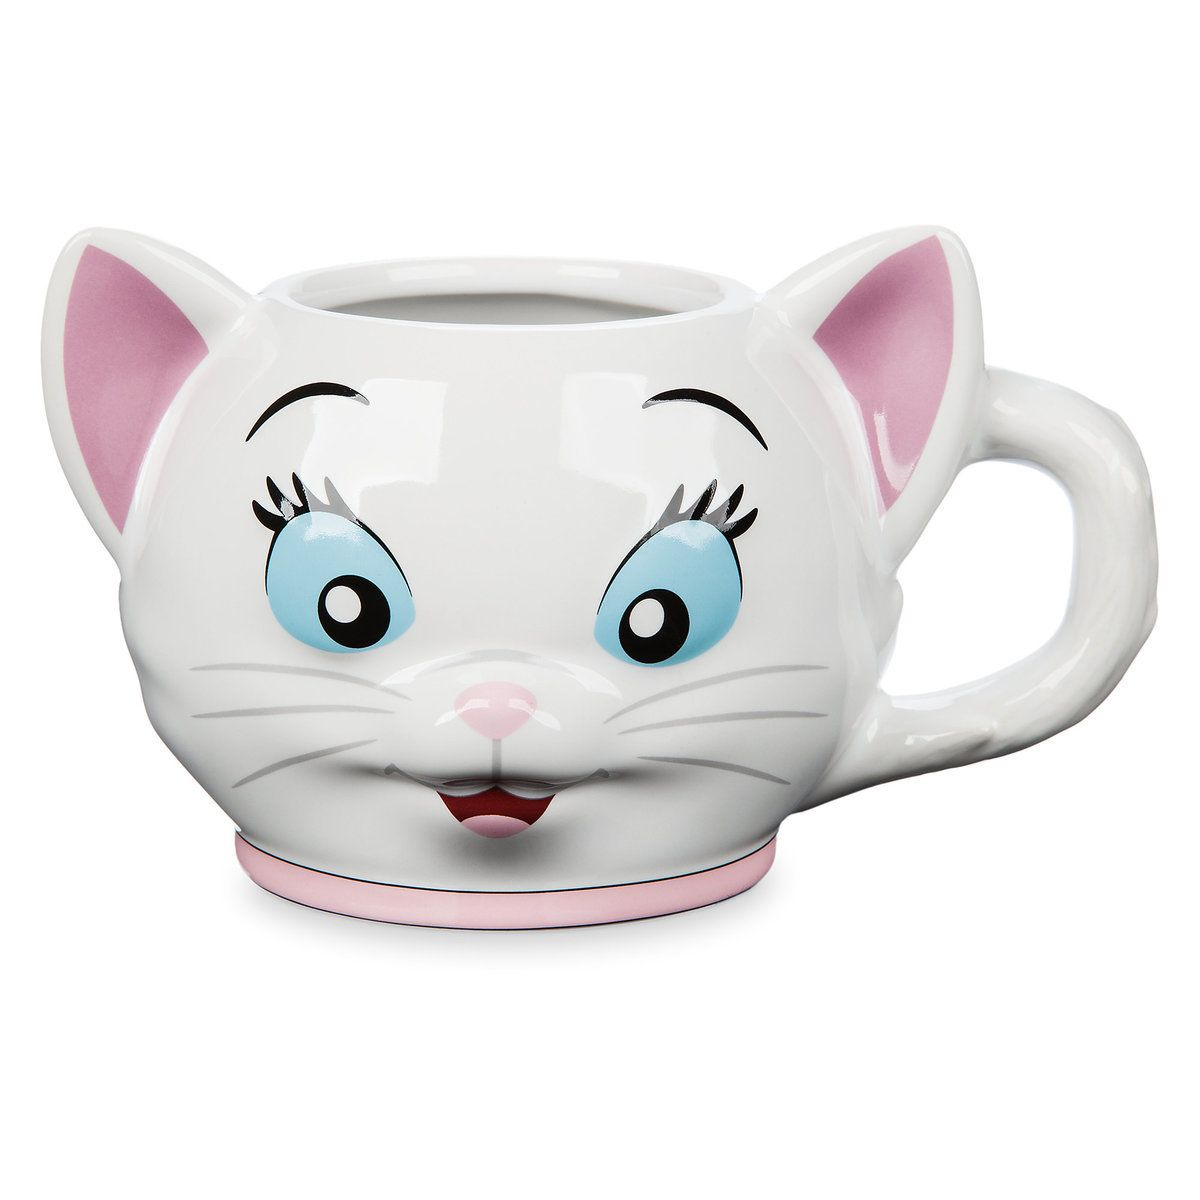 Marie Figural Mug The Aristocats In 2019 W Disney Suite